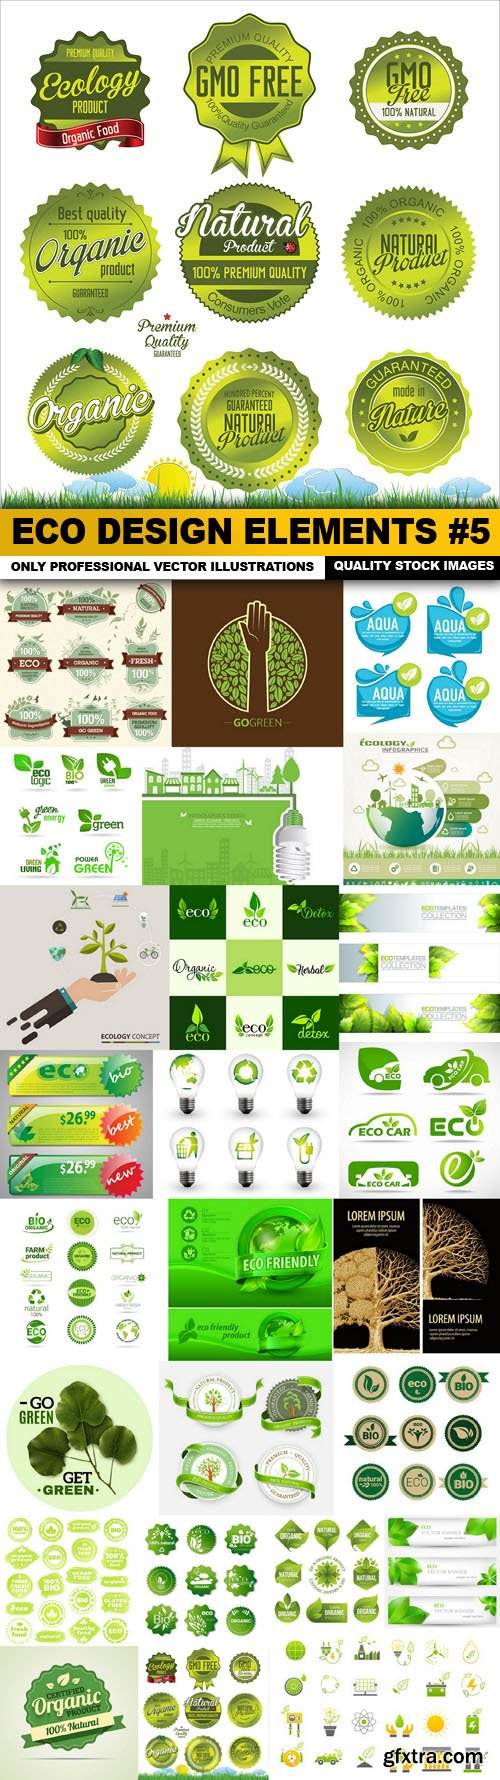 ECO Design Elements #5 - 25 Vector